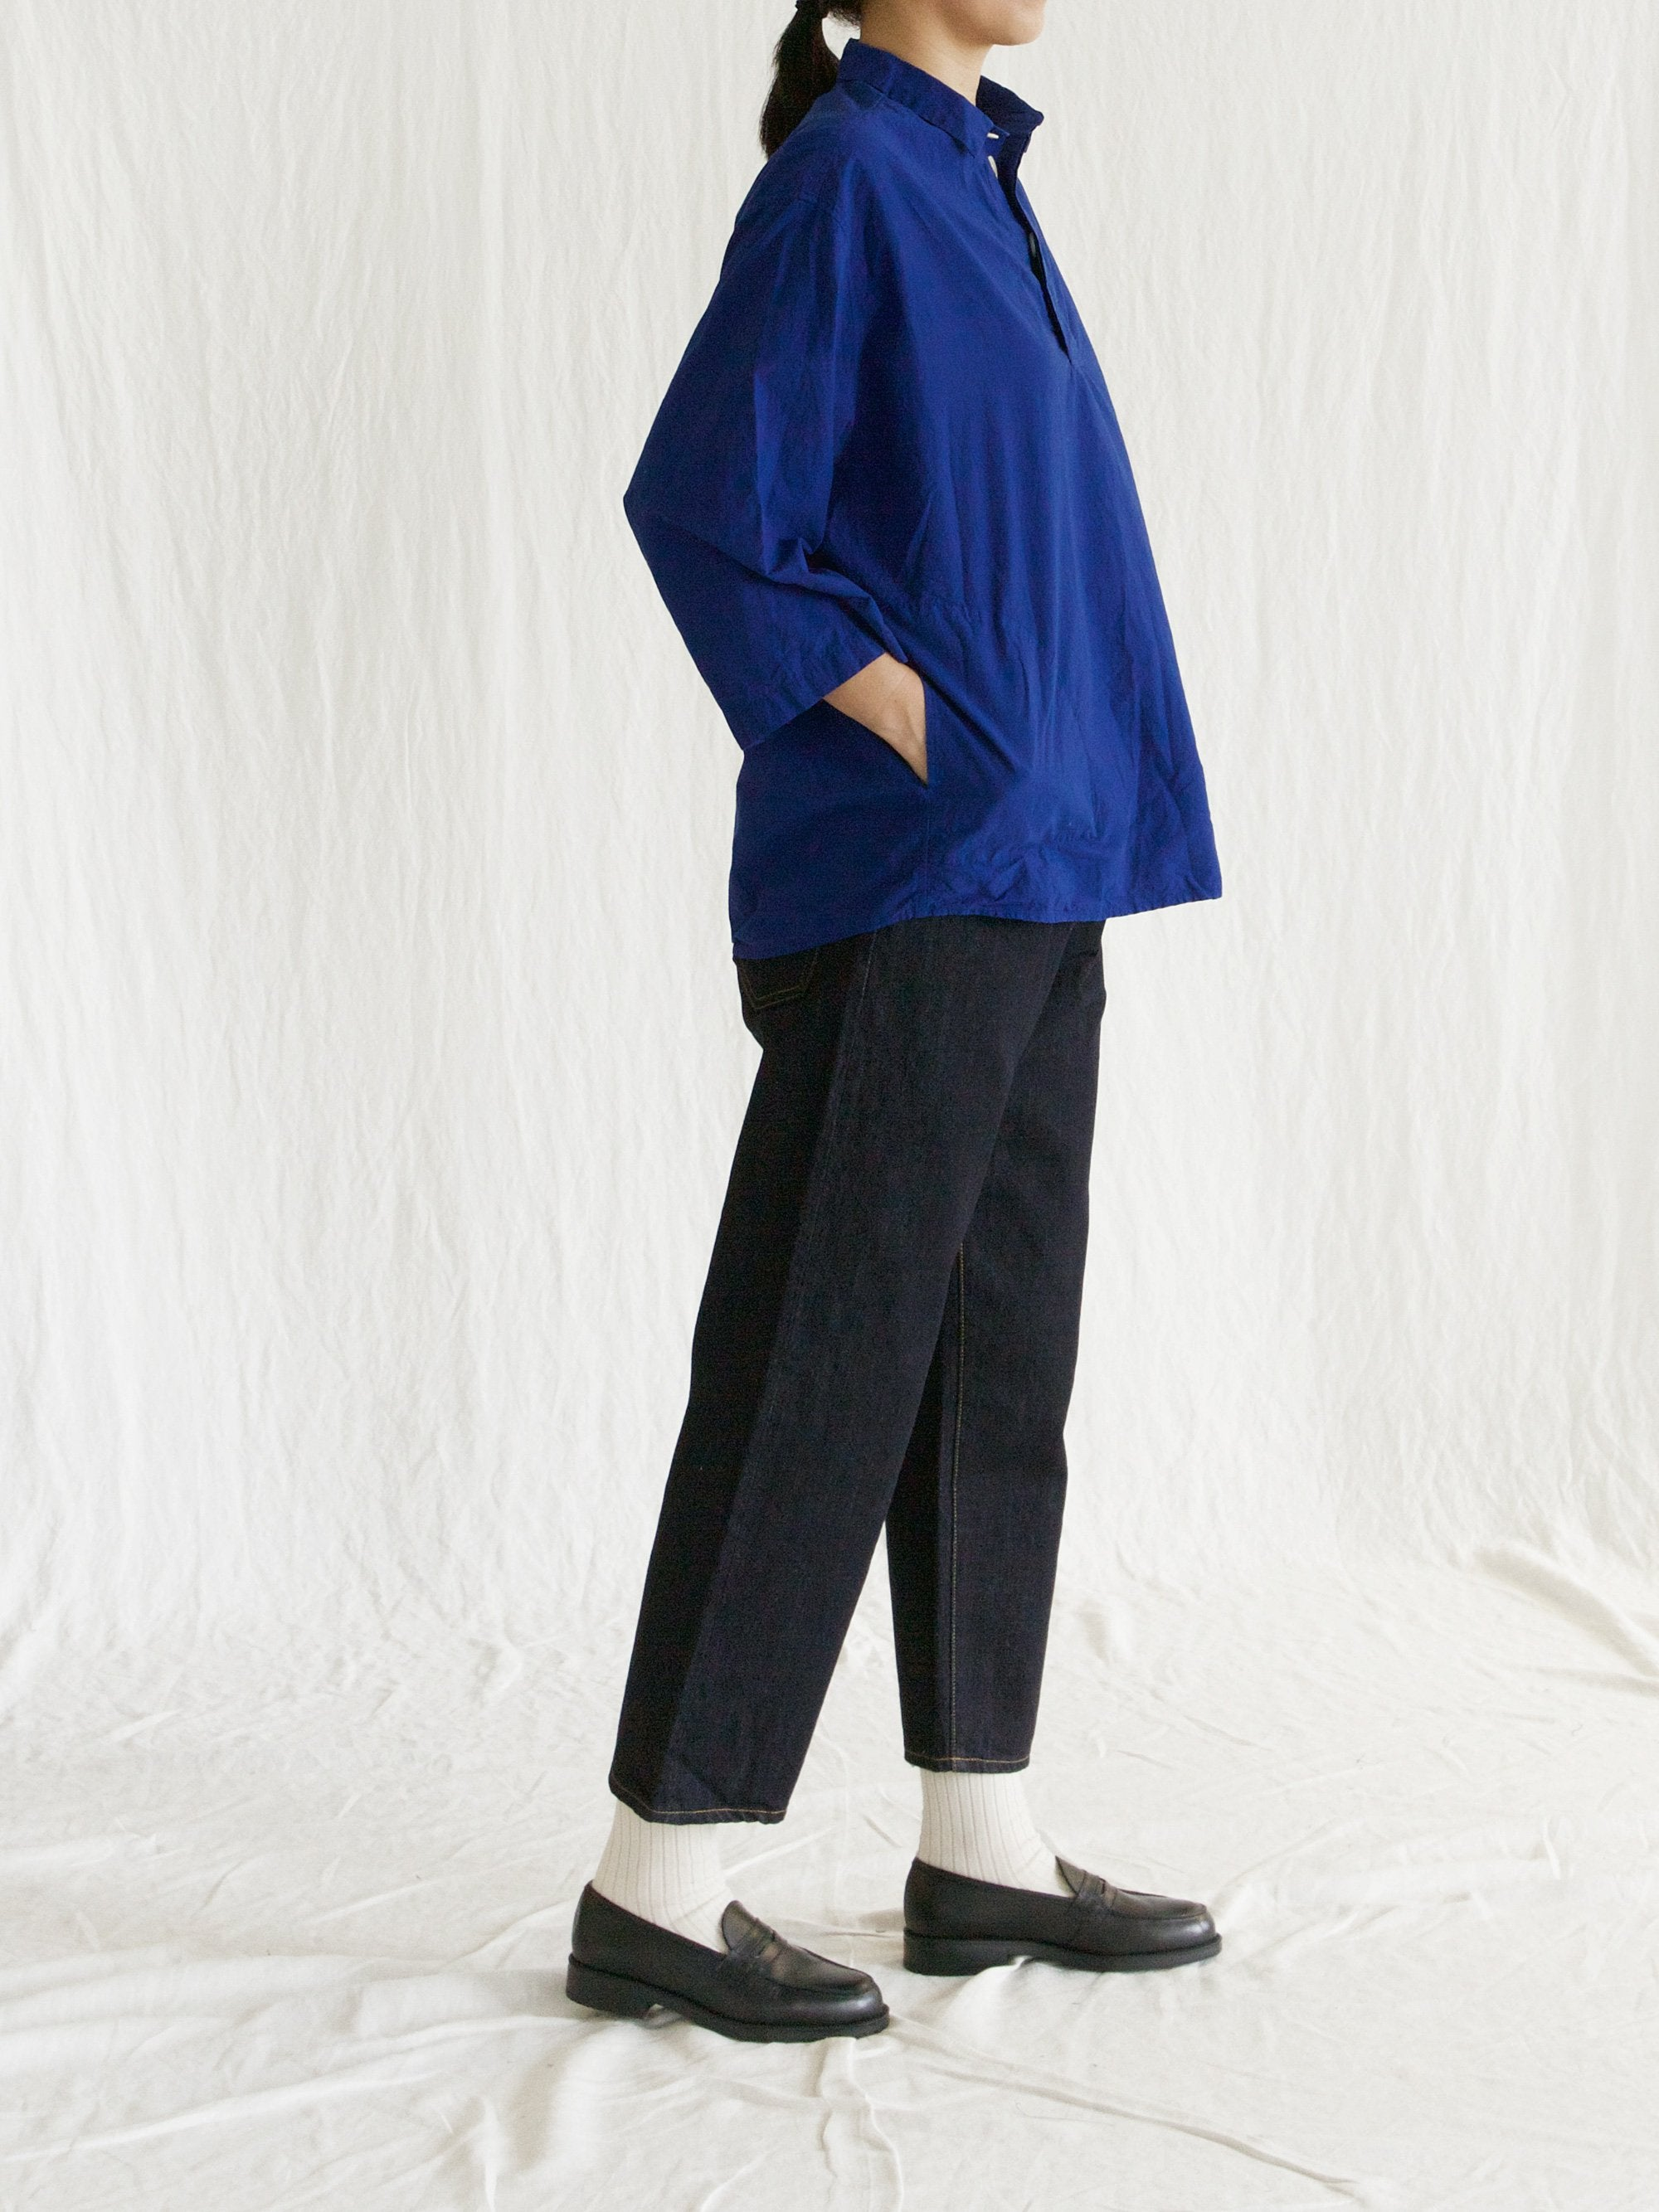 Co / Li Pocket Pullover Shirt - French Blue